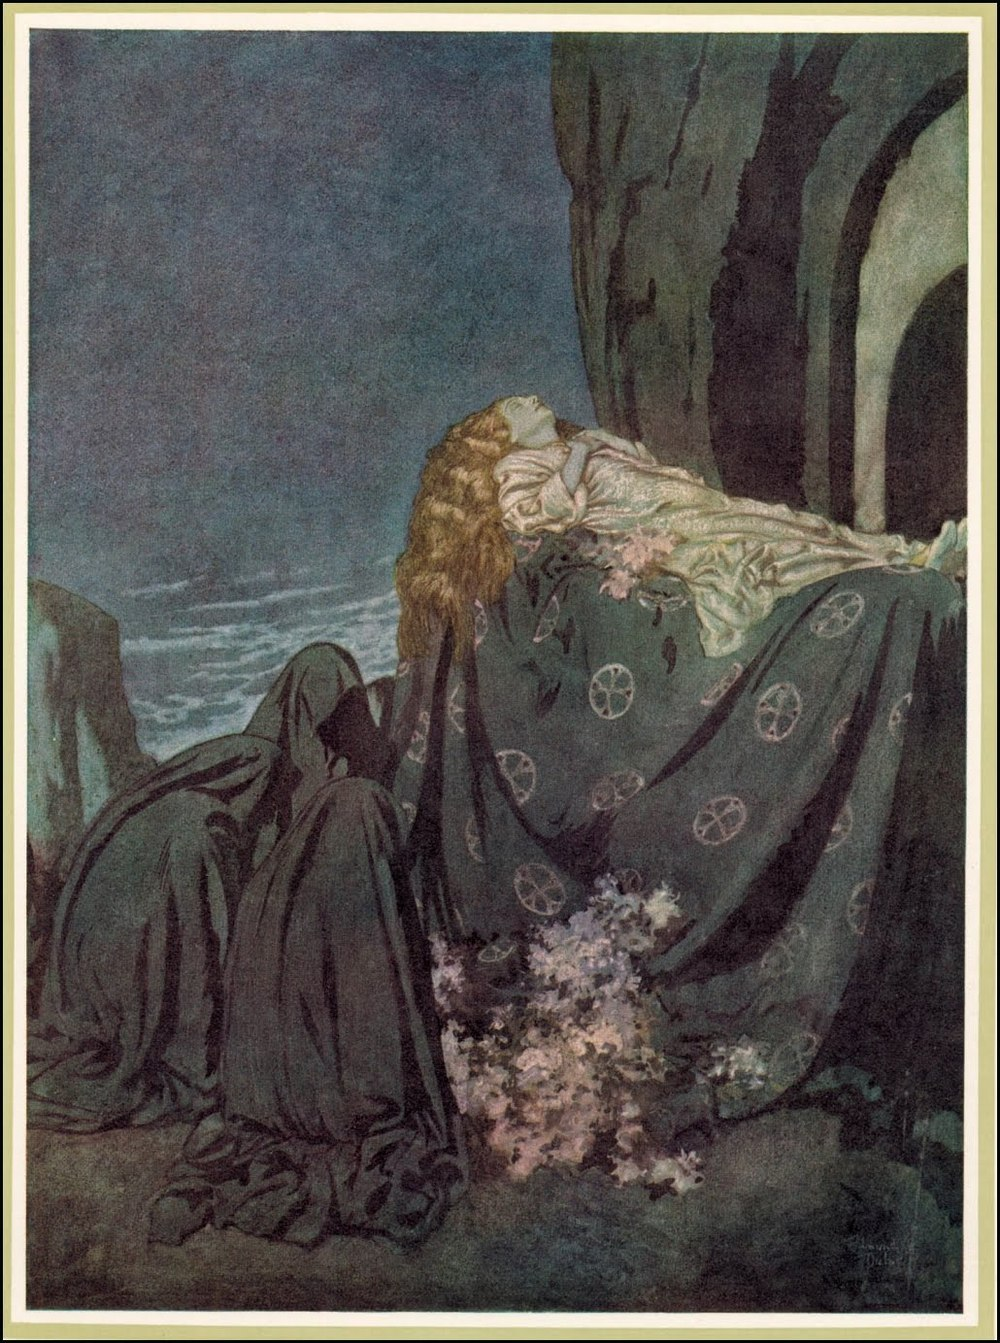 The project gutenberg ebook of the bells and other poems by edgar lenore fandeluxe Choice Image